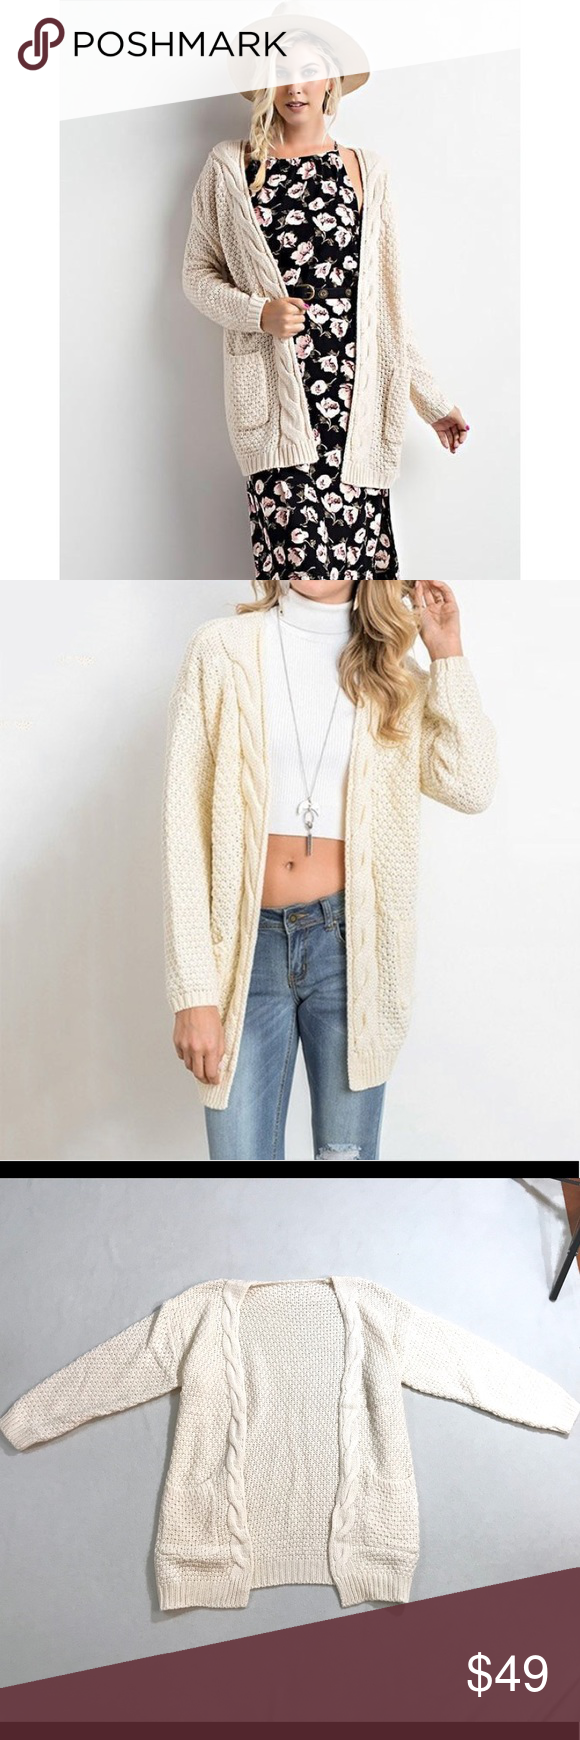 Cream Cable Knit Cardigan Sweater Super cute warm cable knit ...